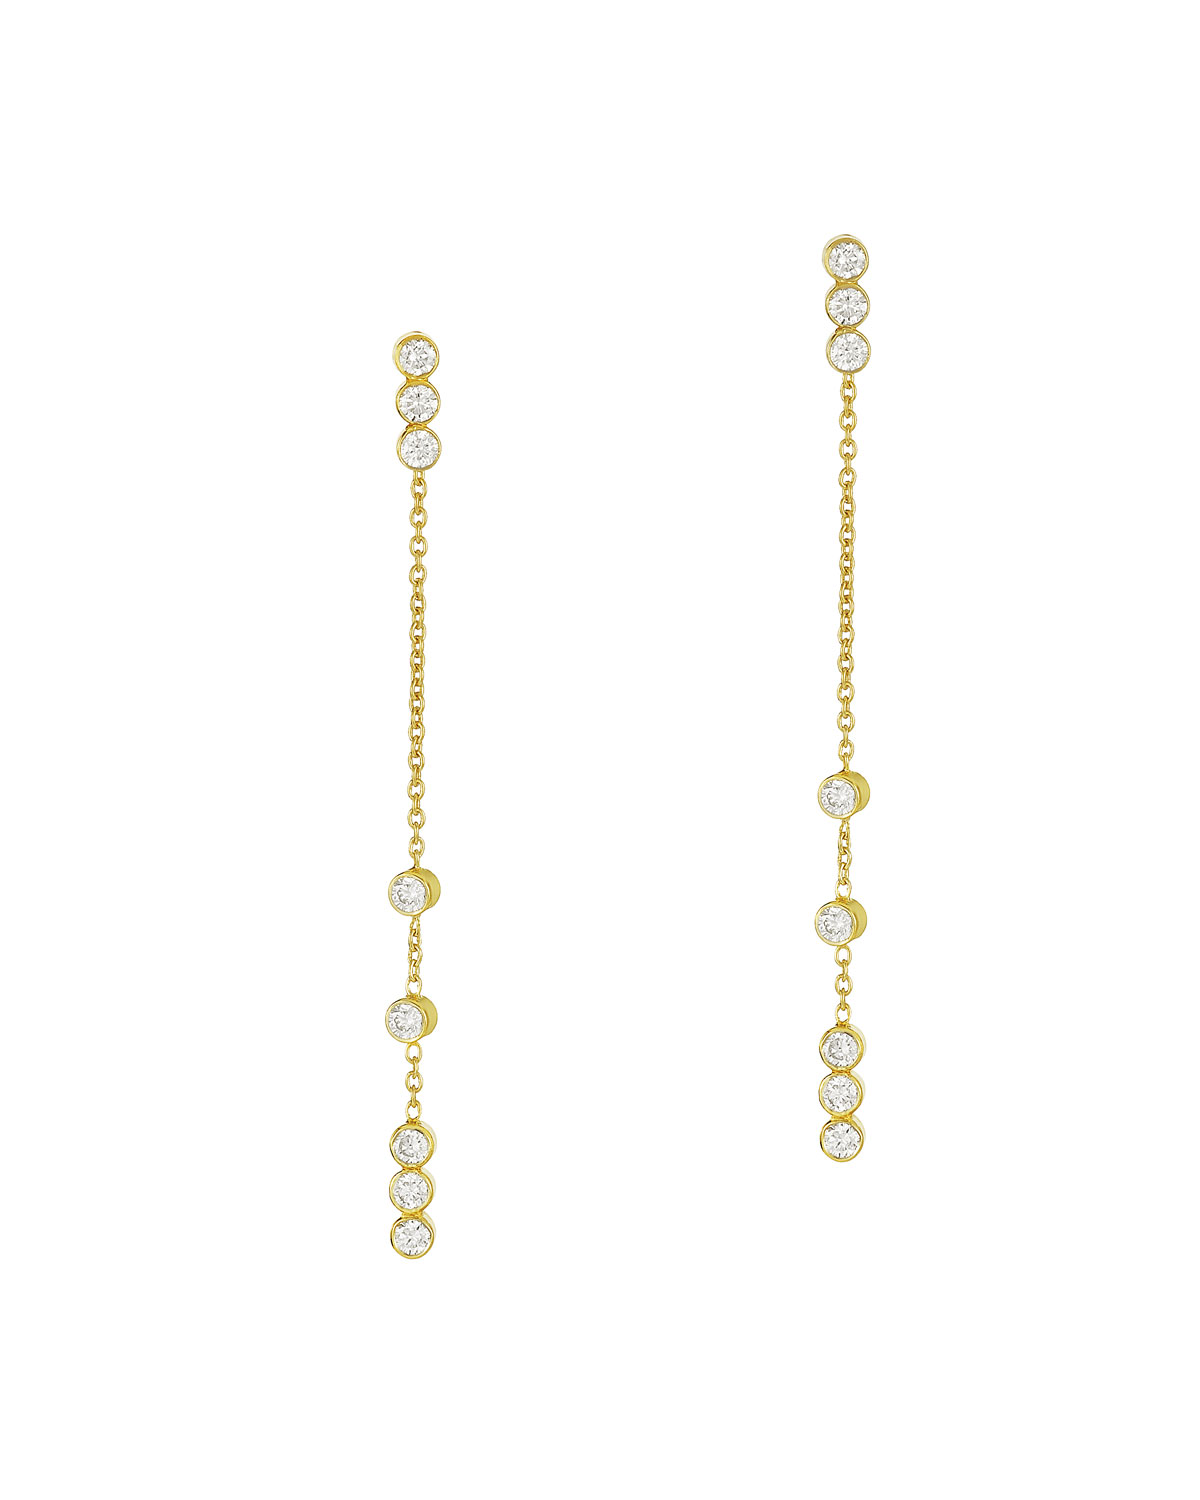 LEGEND AMRAPALI Tarakini Convertible Diamond Dangle Earrings